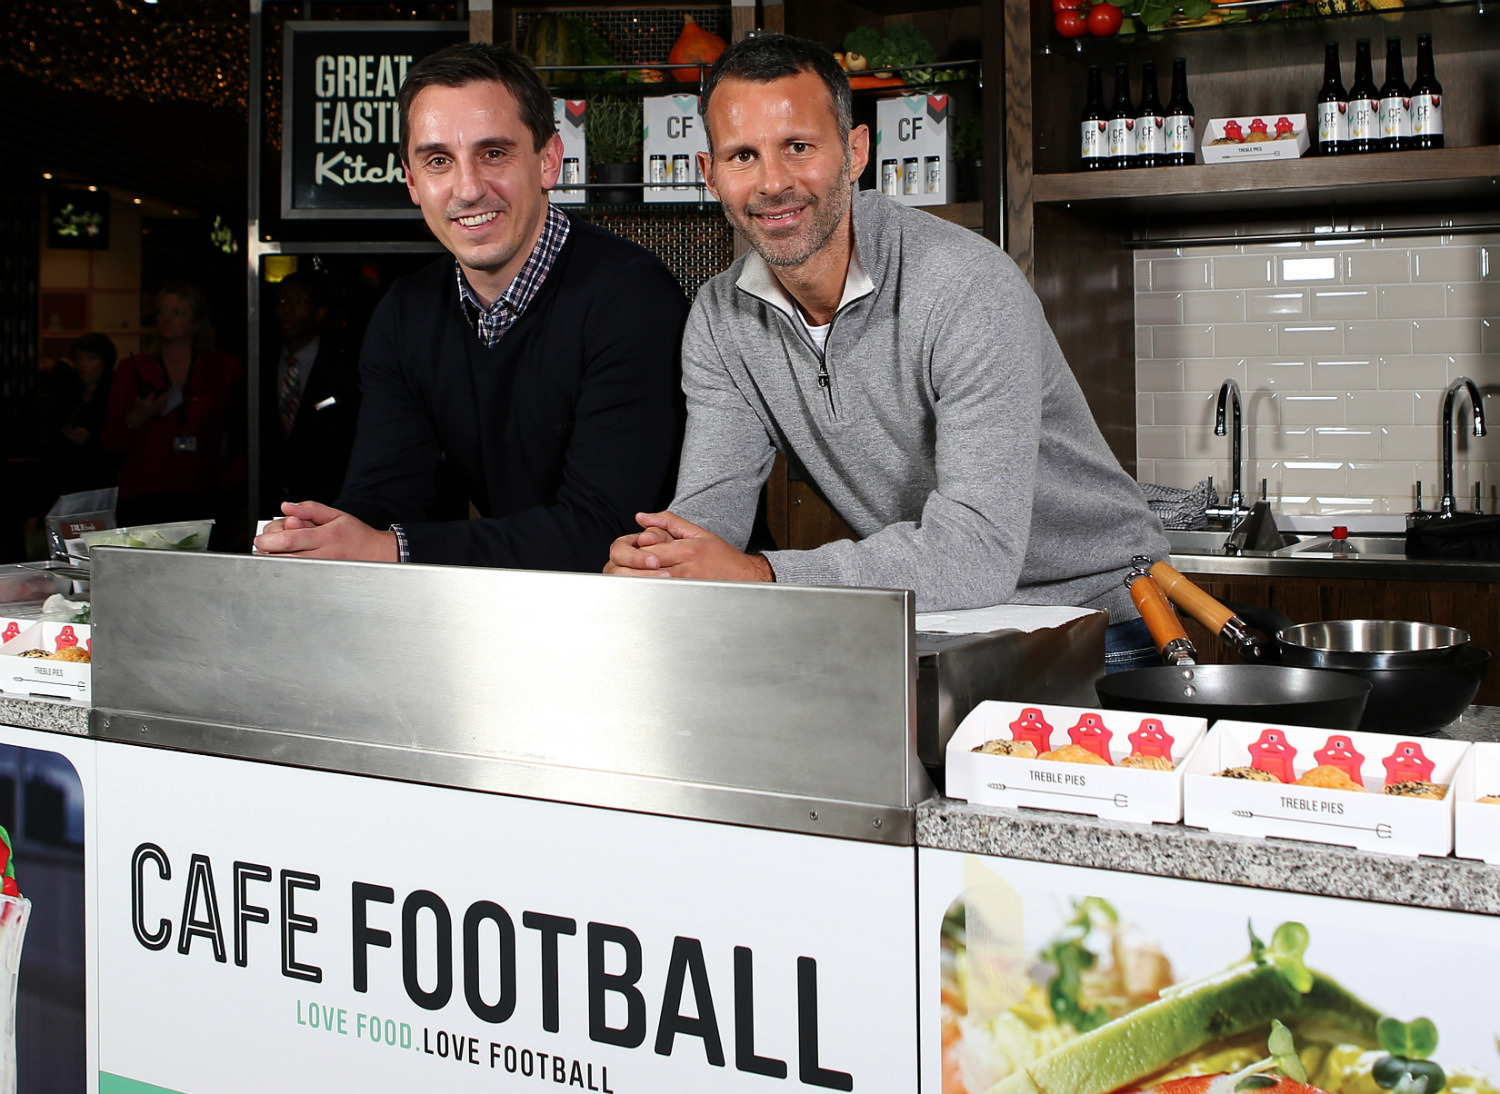 Gary Neville and Ryan Giggs at Café Football